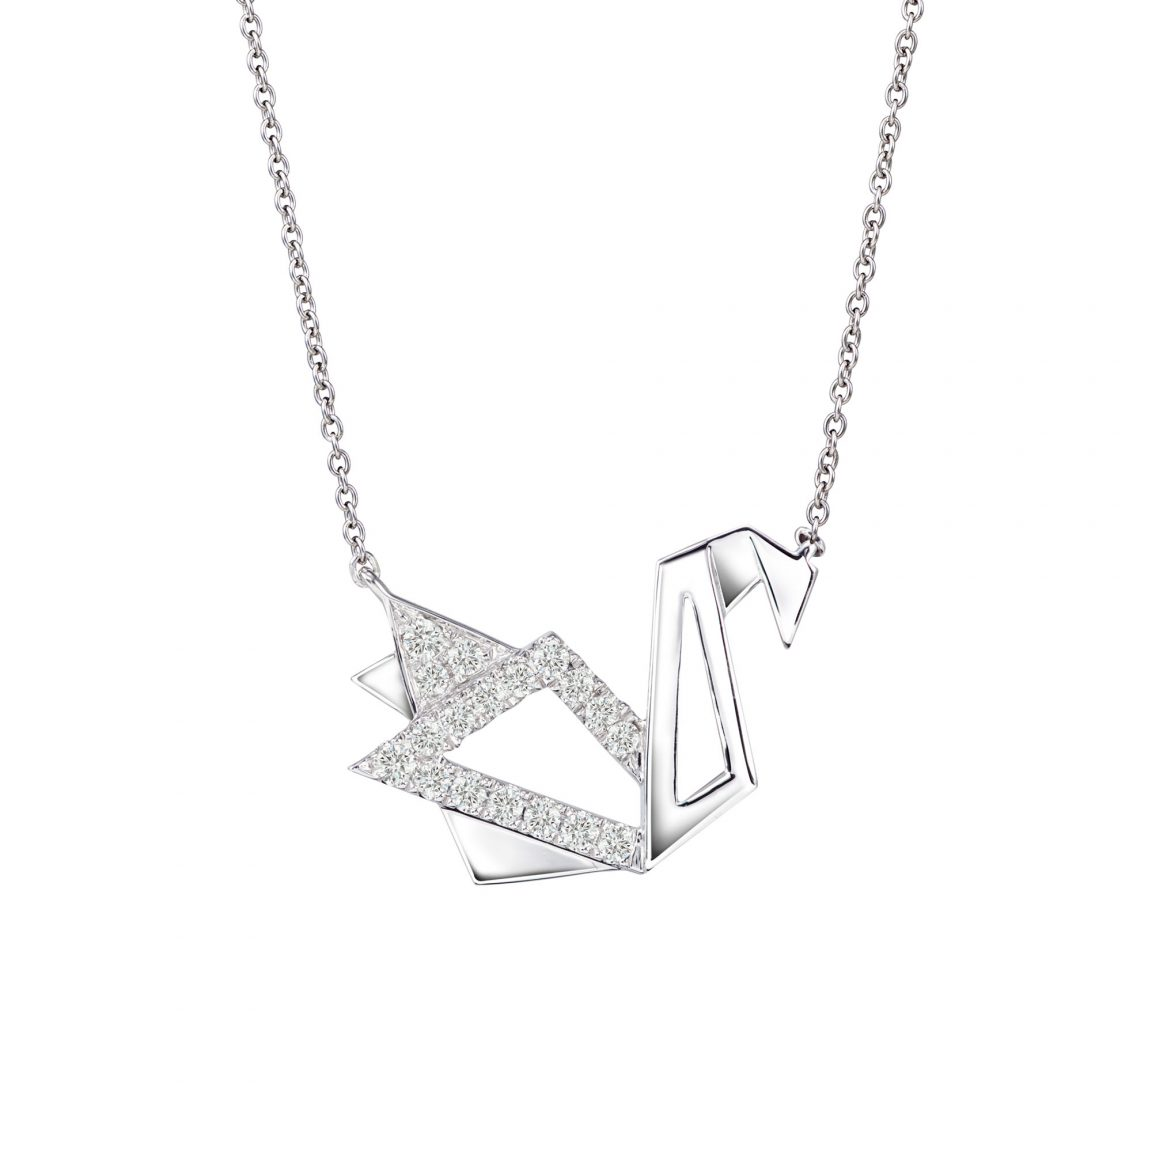 AURY Swan Necklace